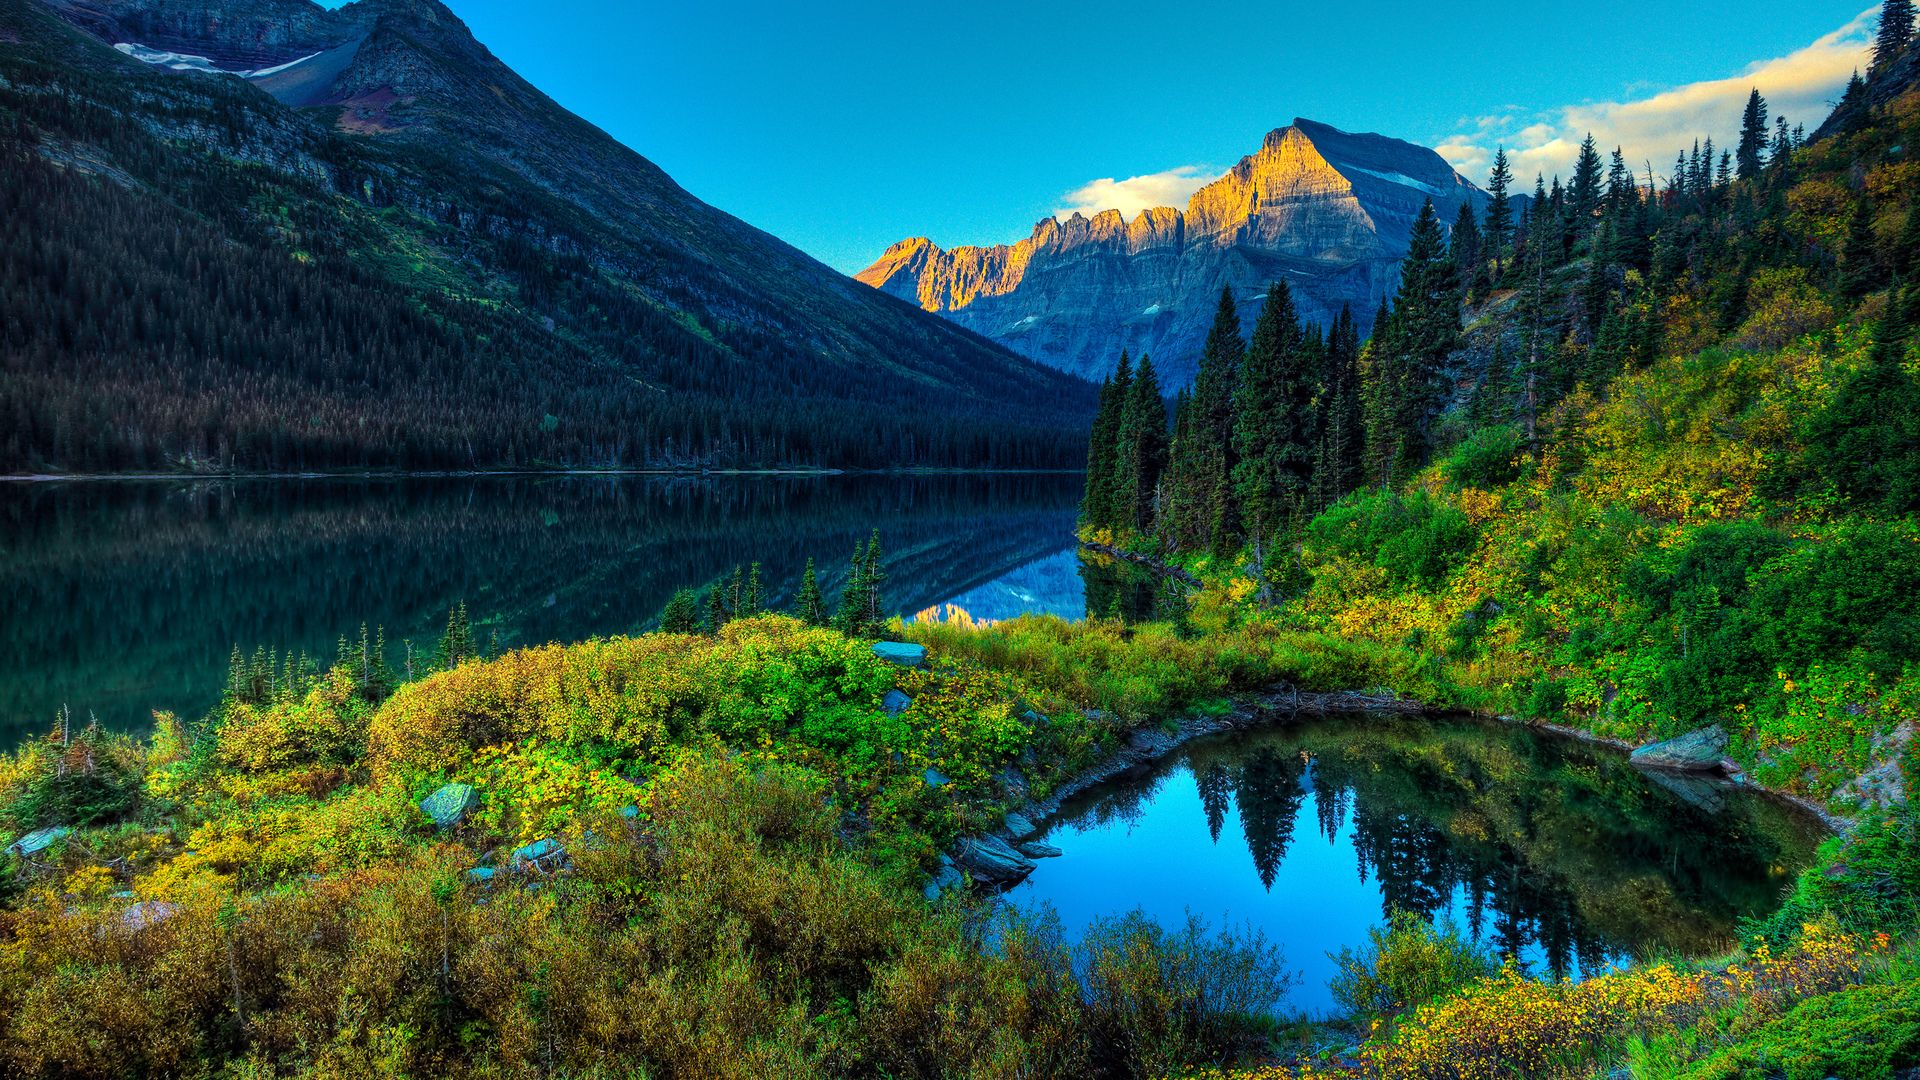 Of Wallpapers Images Mountains